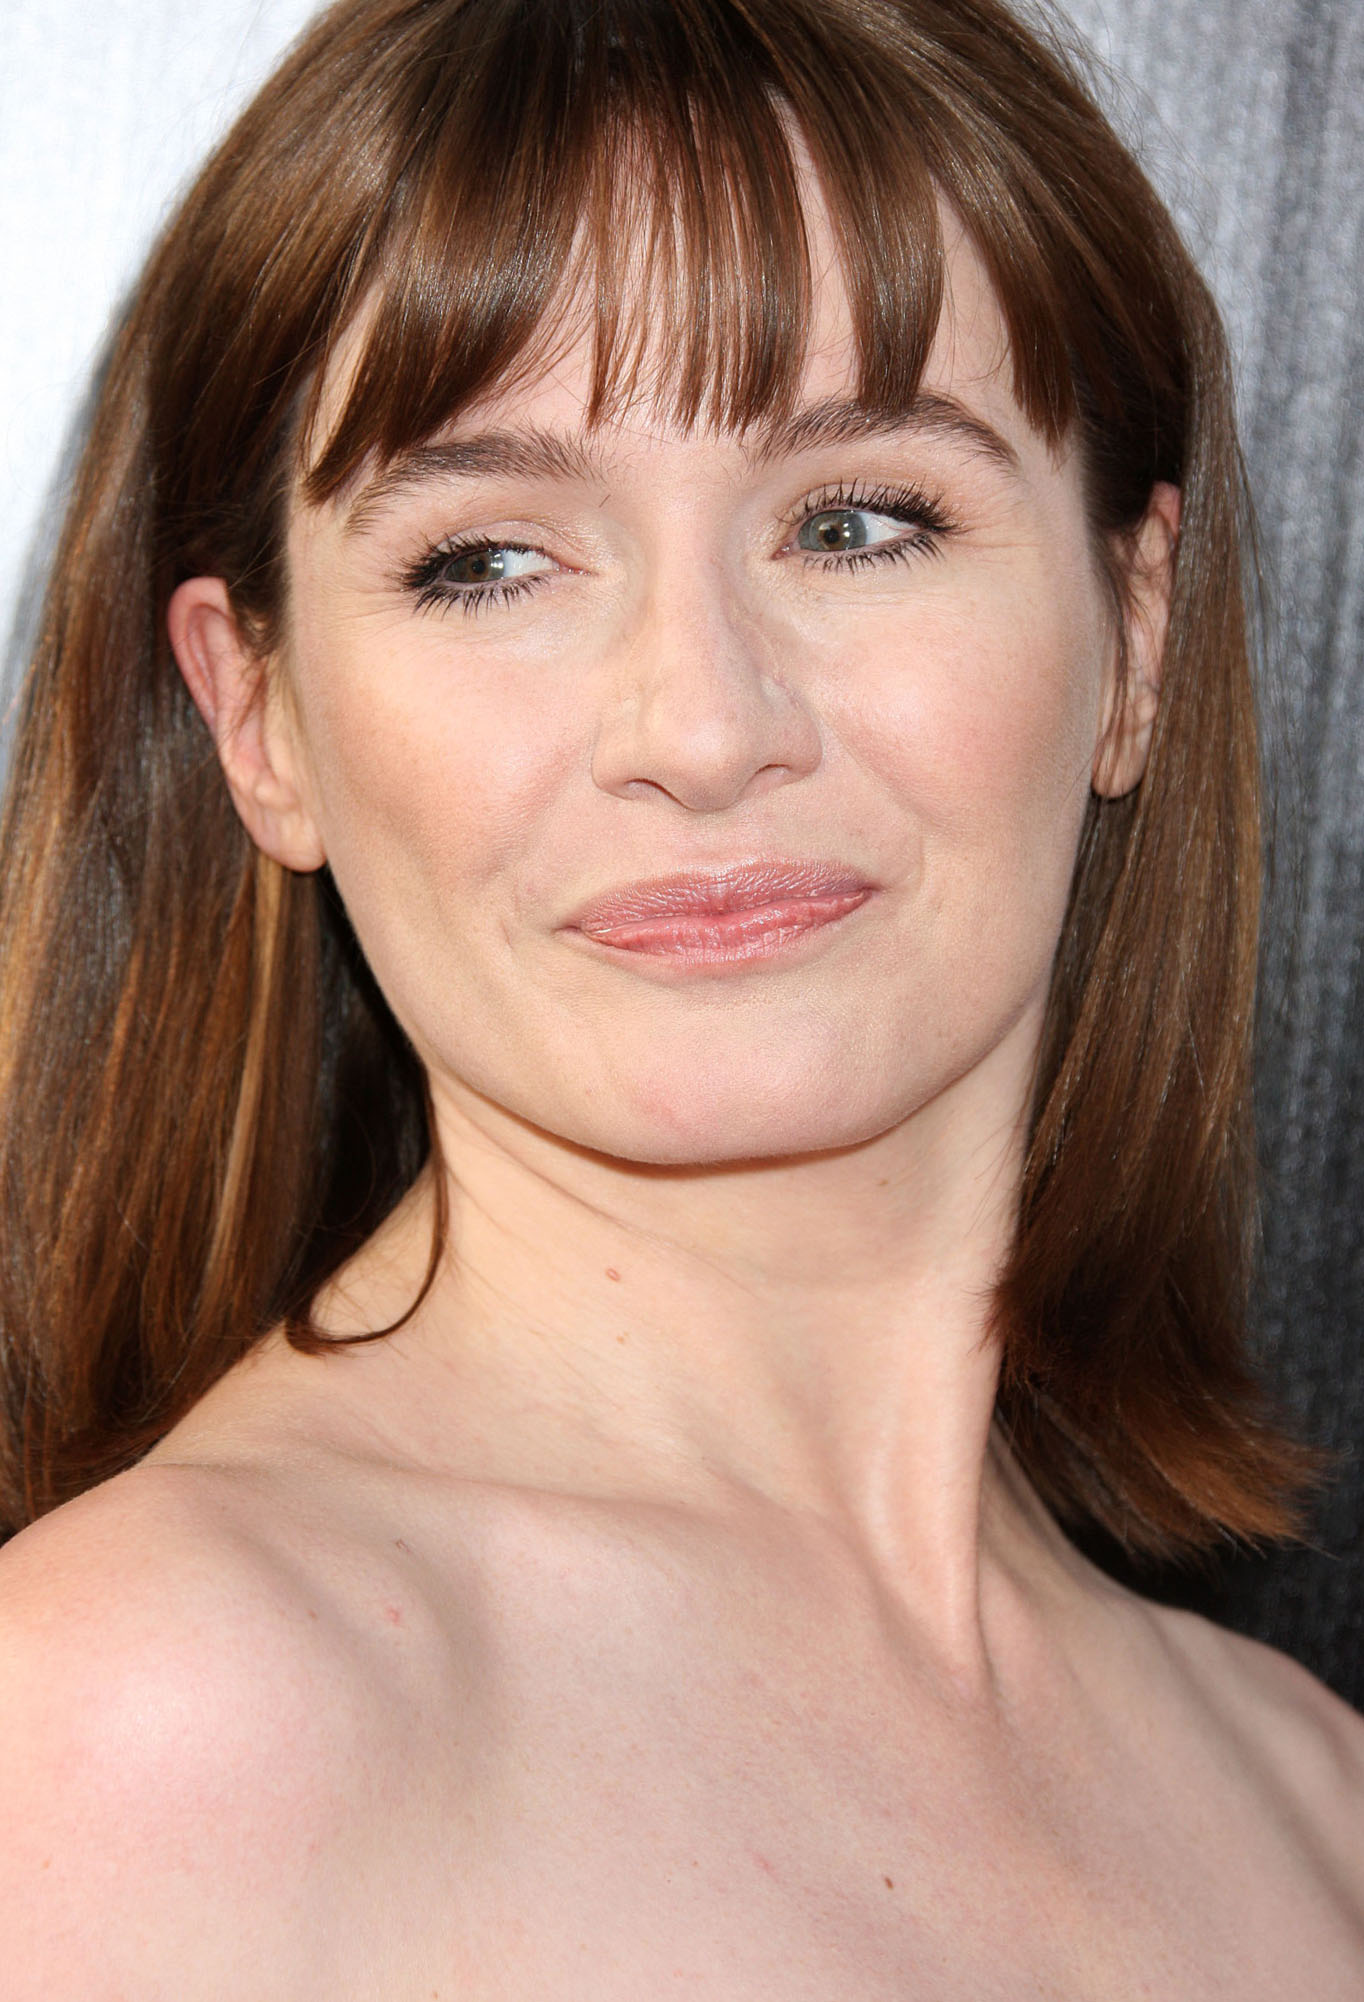 naked pics of emily mortimer